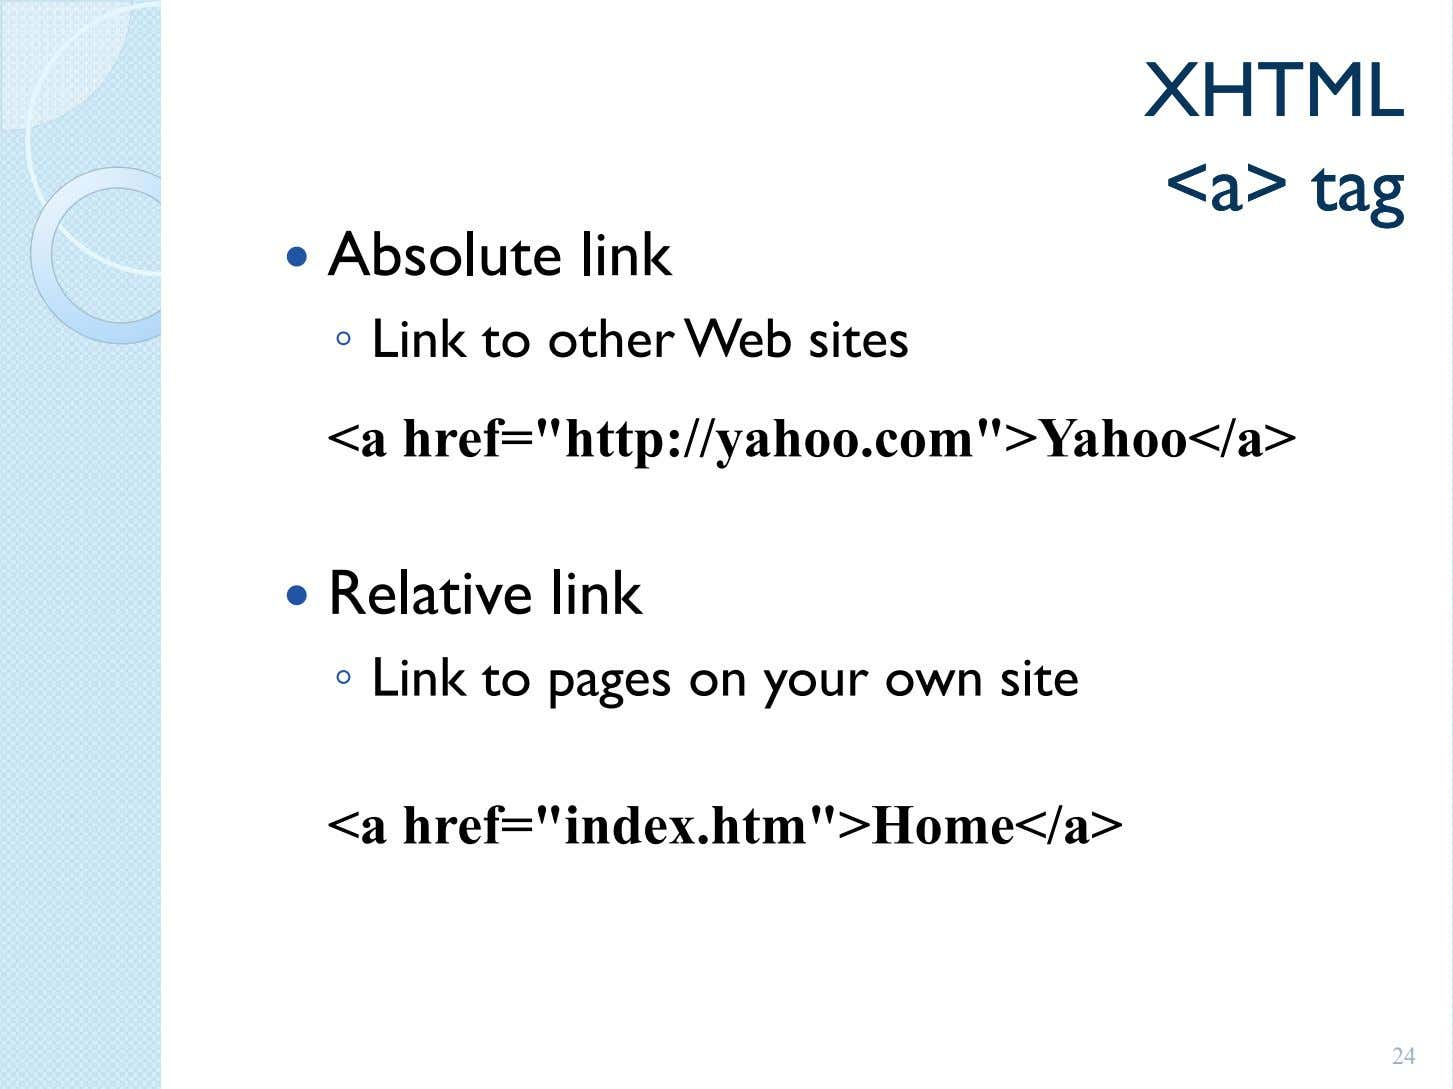 XHTMLXHTML <a><a> tagtag Absolute link ◦ Link to other Web sites <a